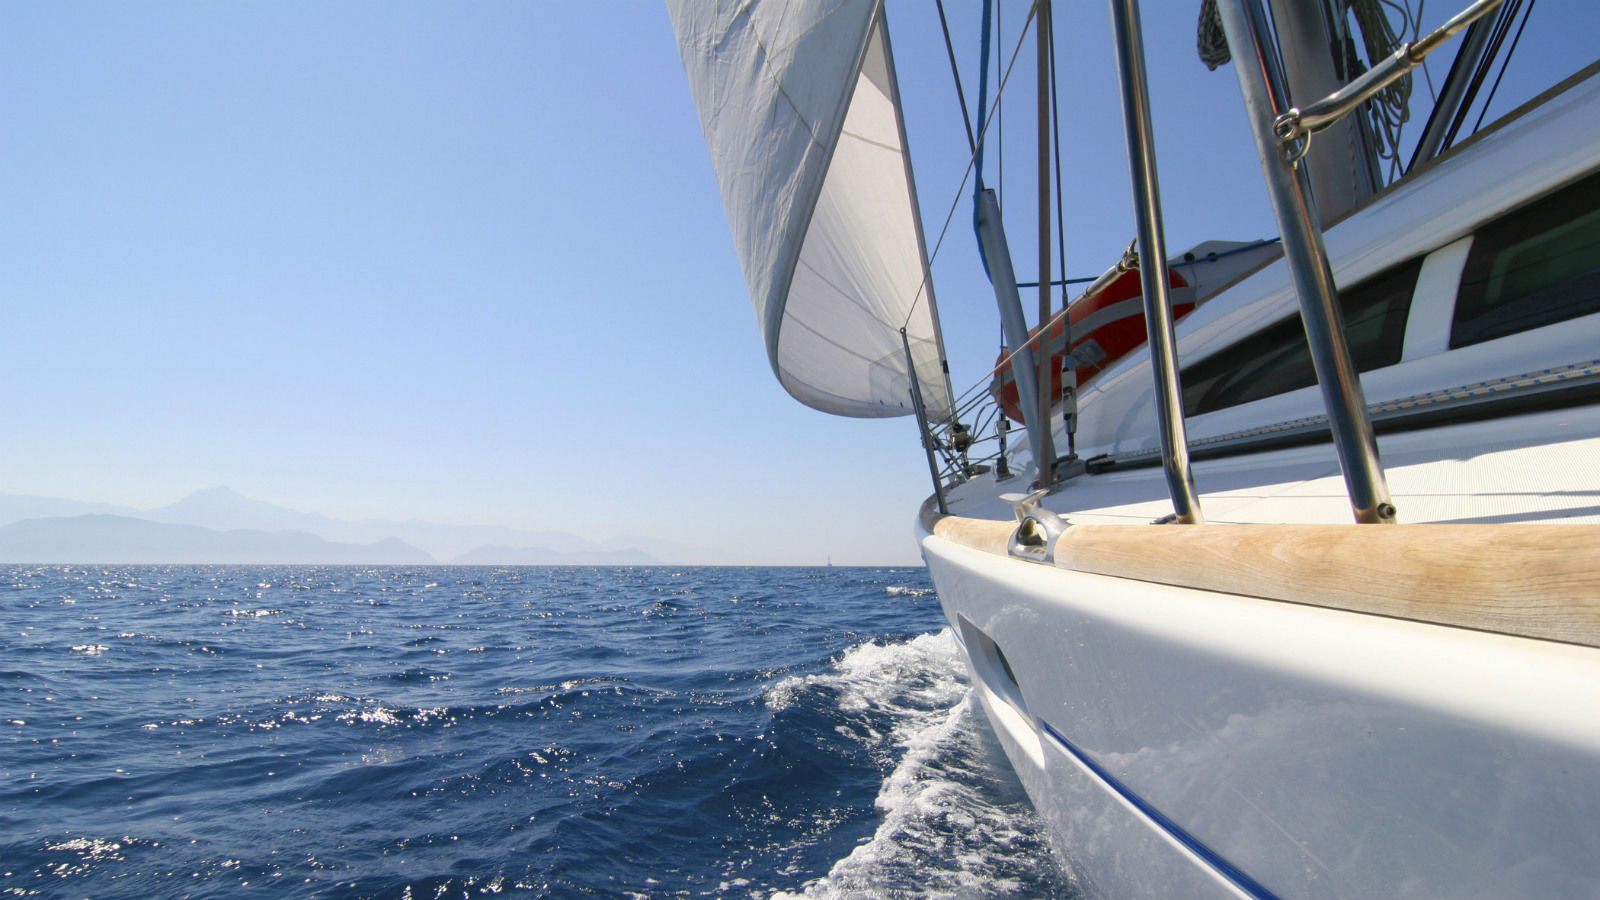 Rent a yacht Santorini - Activities at Vedema, a Luxury Collection Resort